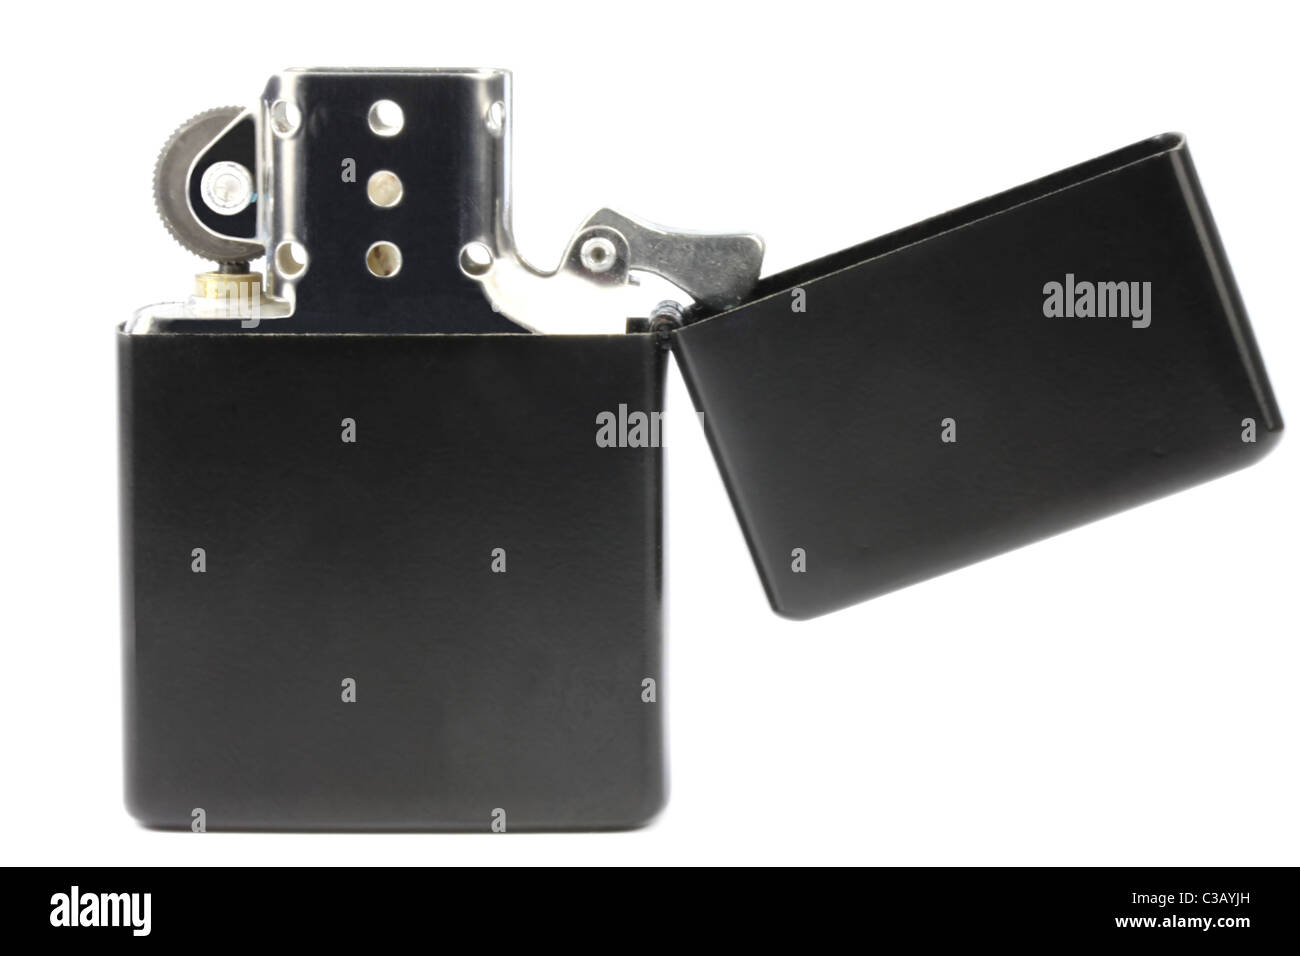 Black petrol Zippo type lighter isolated on a white background - Stock Image